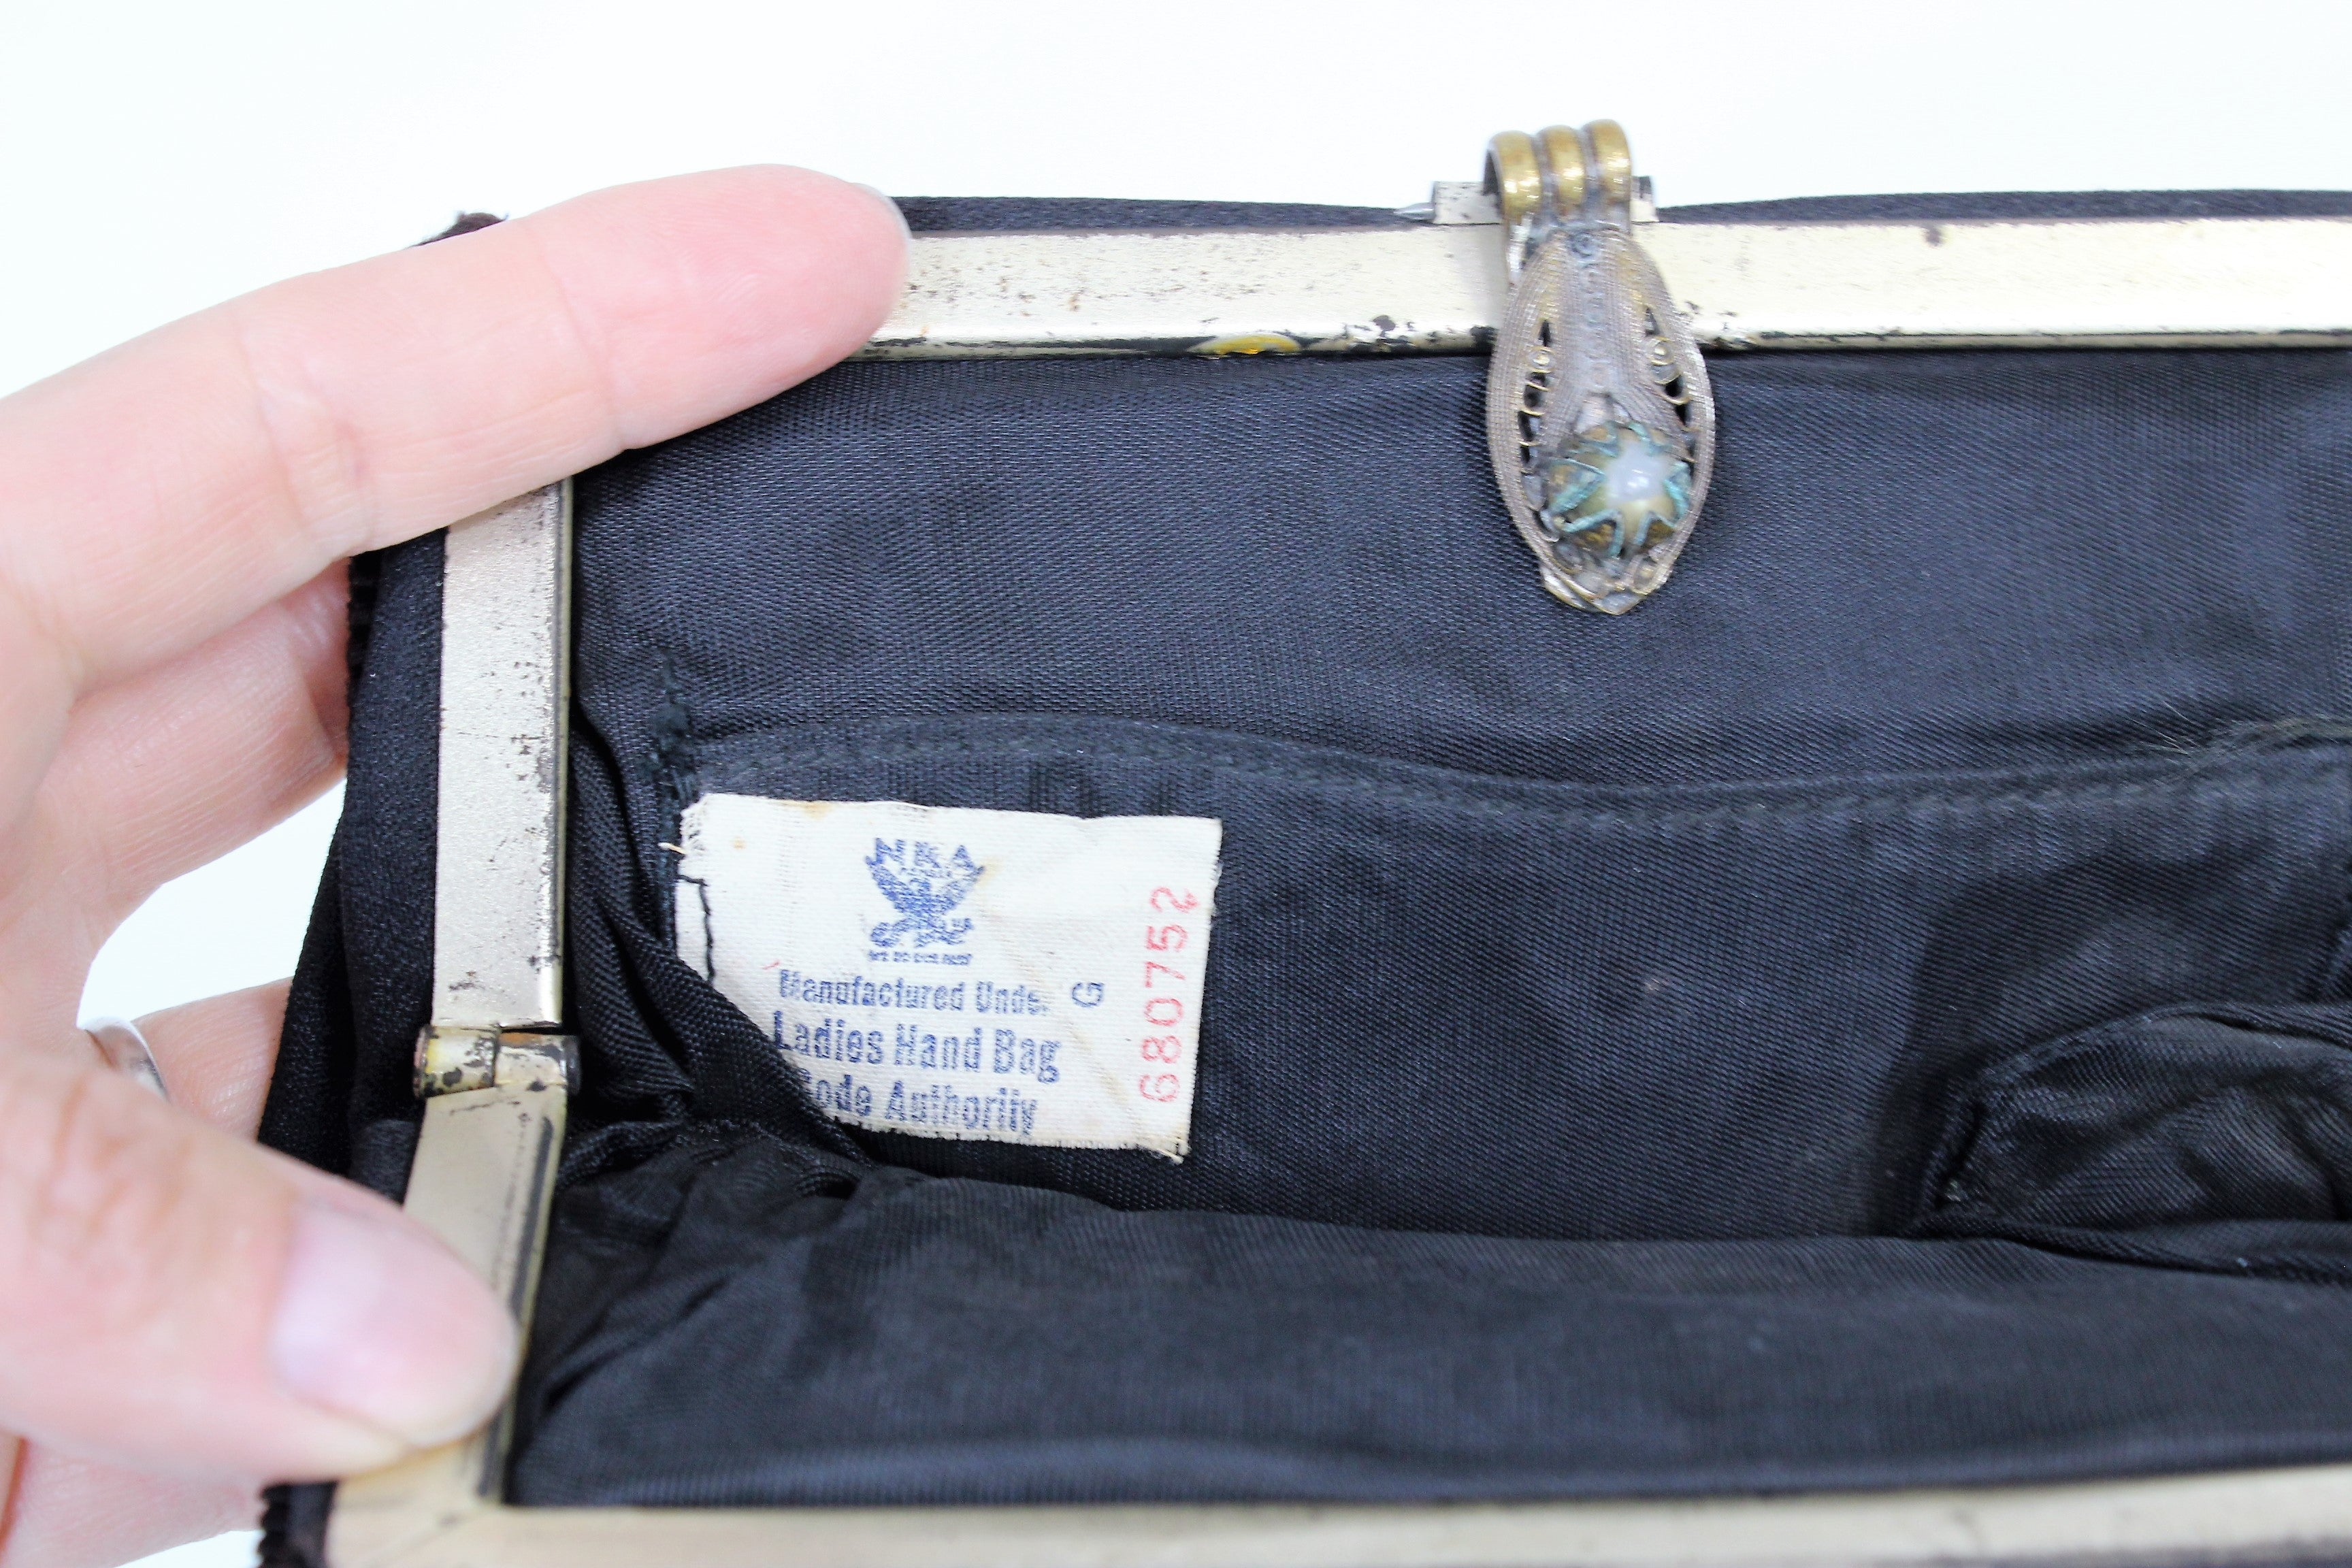 Vintage 1930s  Rare NRA Ladies Hand Bag Code Authority Black Clutch Bag Wiith Wrist Strap